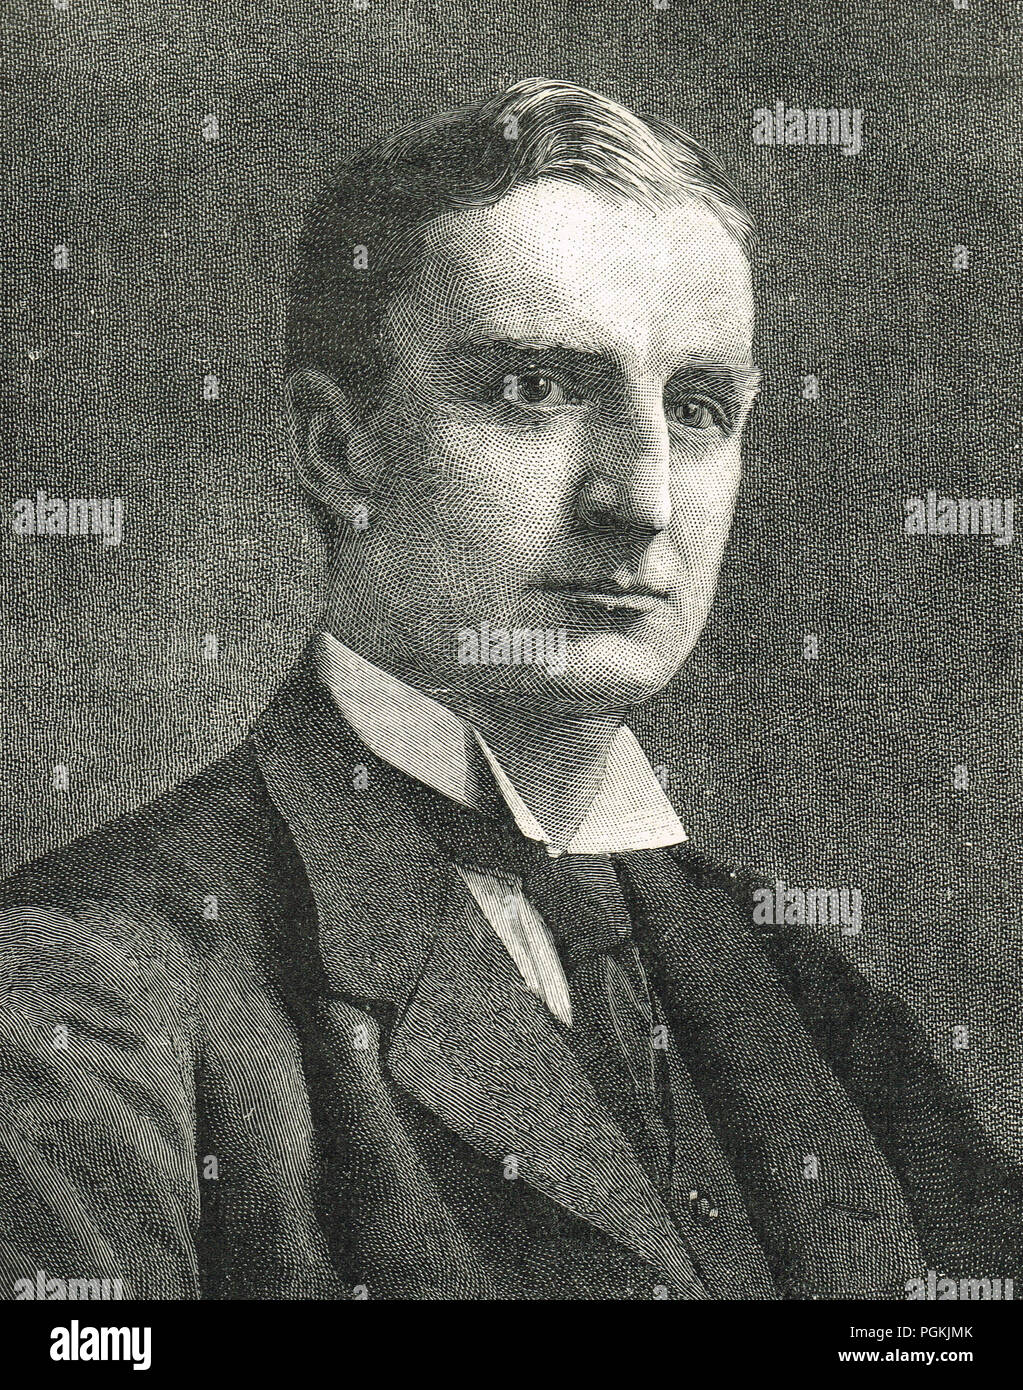 Sir Edward Grey, British Foreign secretary 1906-16.  Famous for his remark to a friend on the Eve of World War 1 'The lamps are going out all over Europe, we shall not see them lit again in our life-time' - Stock Image